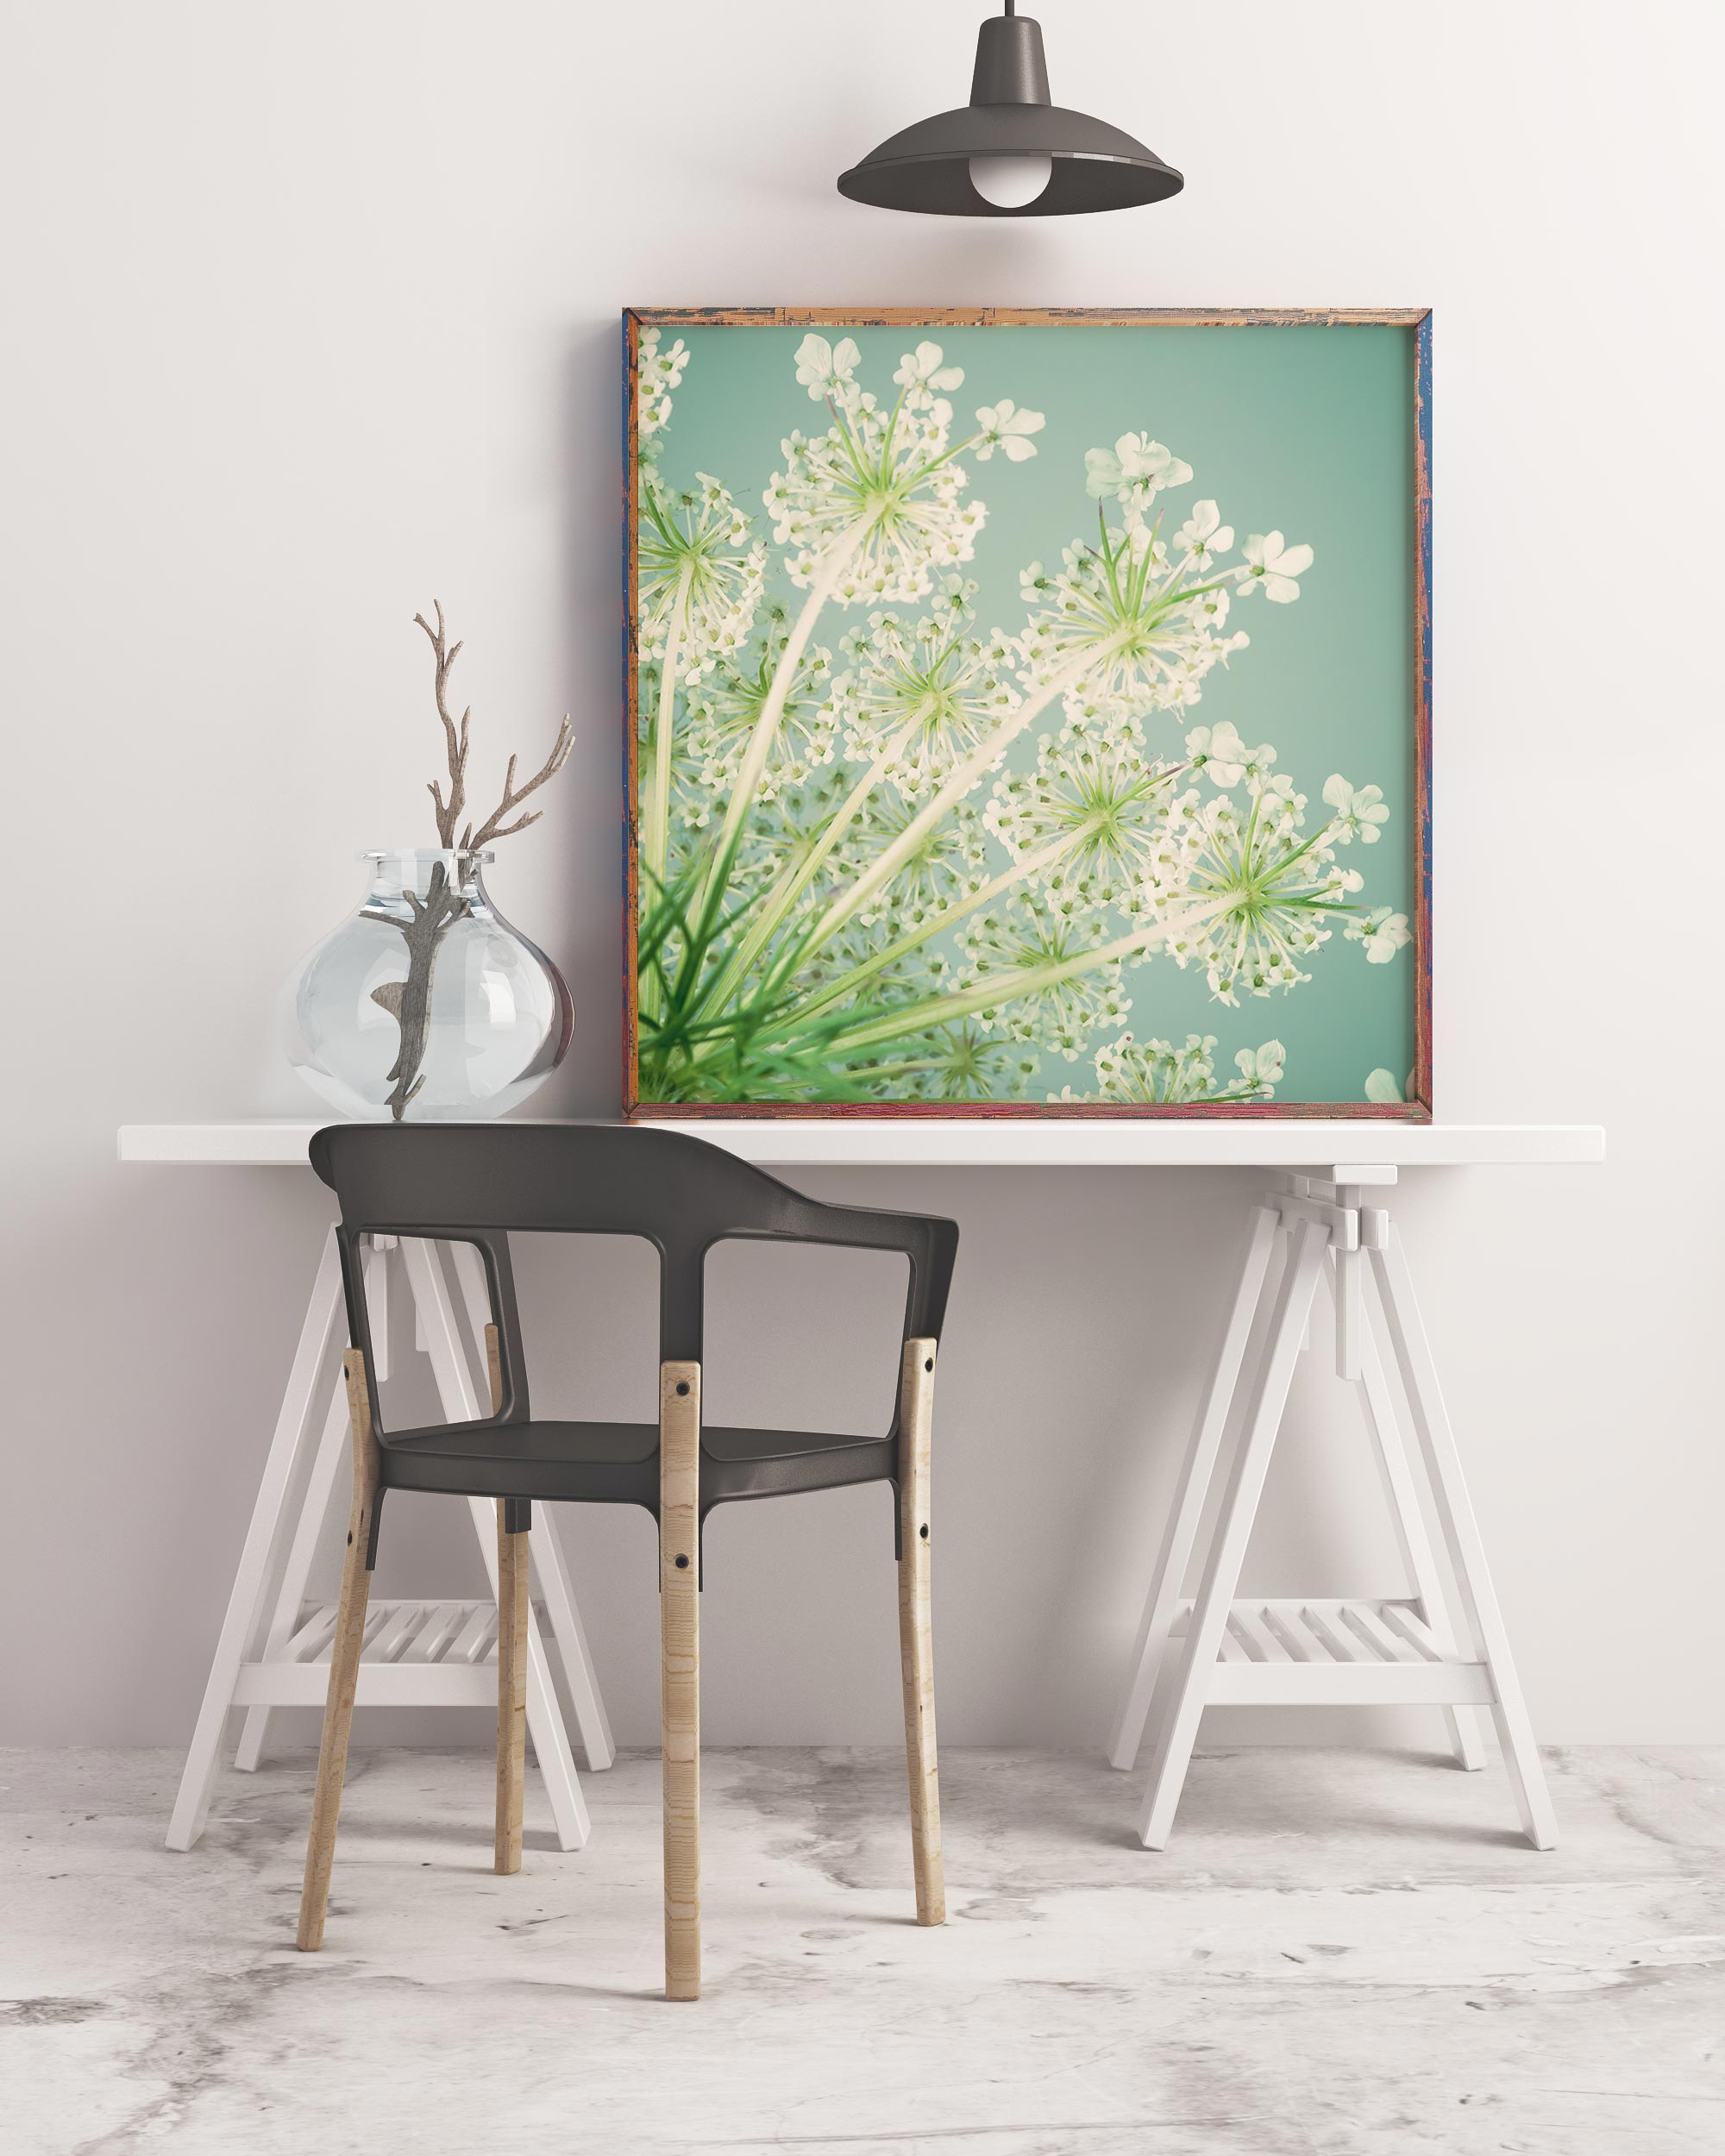 Sample framed image of queen anne's lace flower print